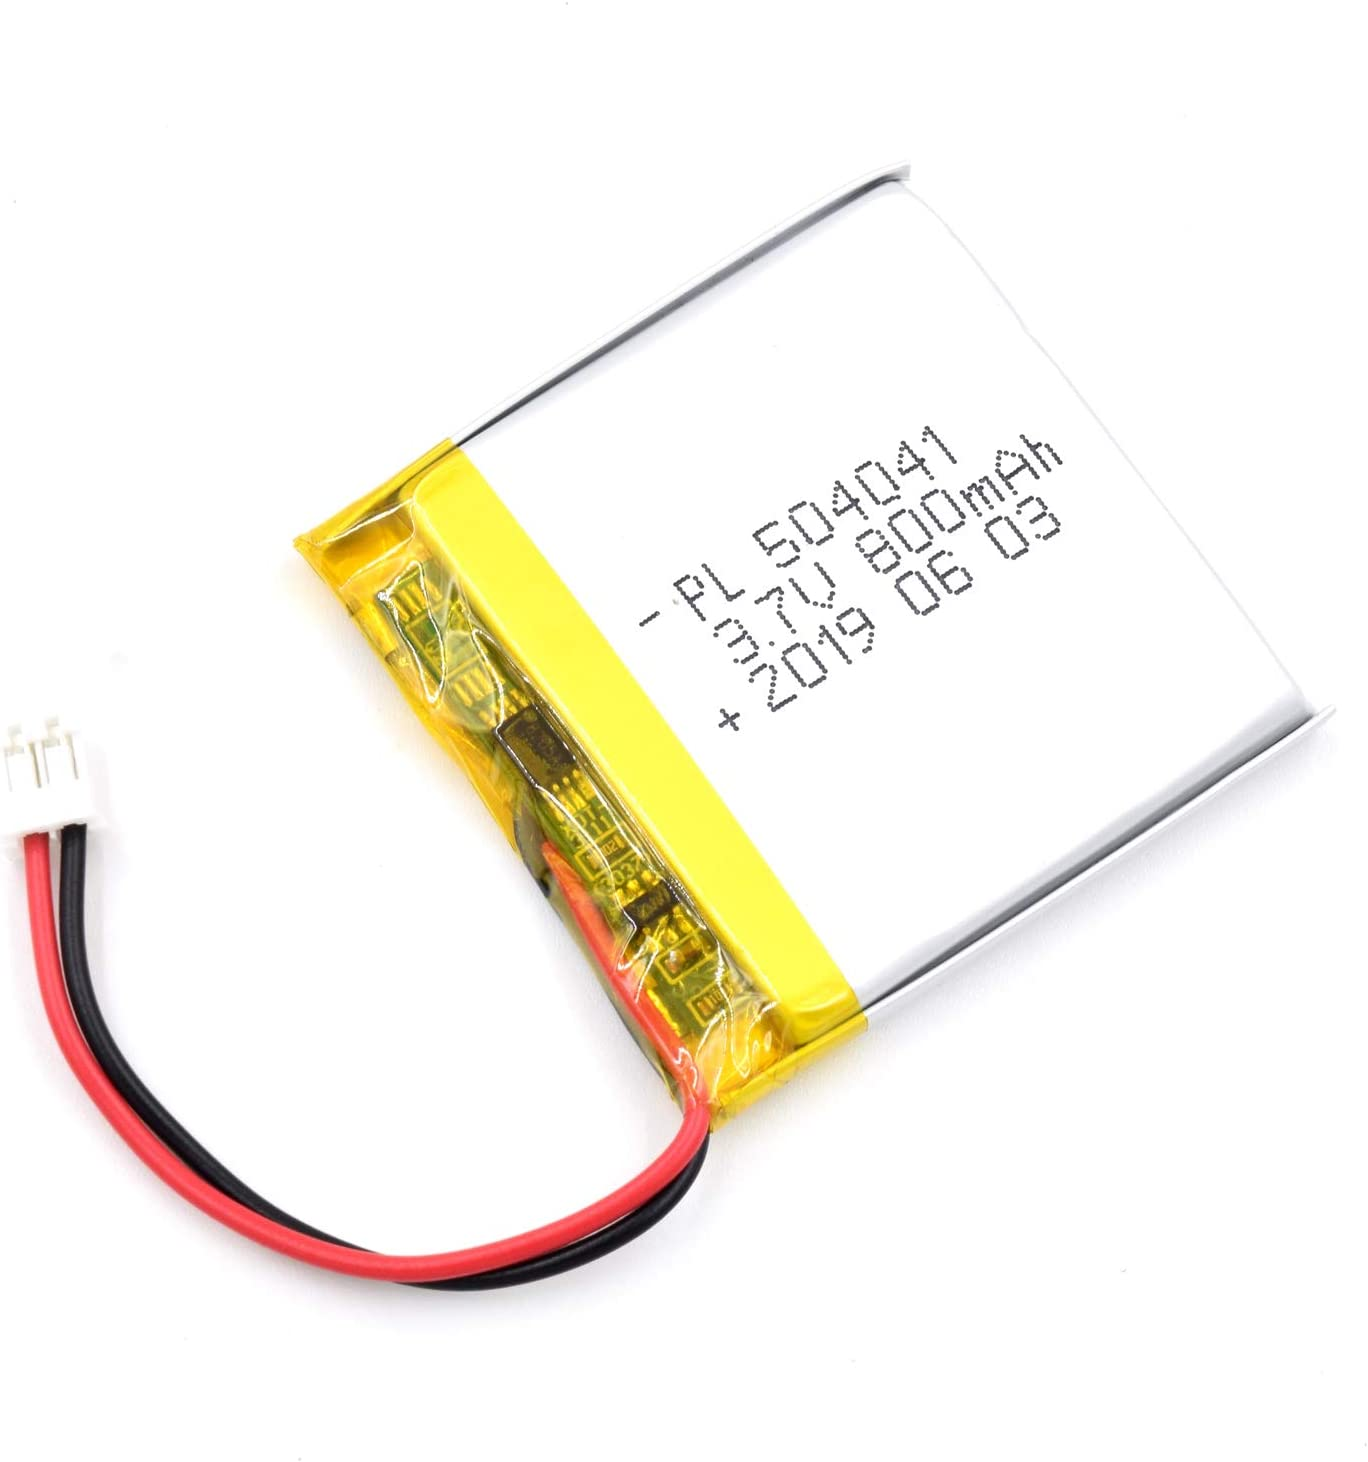 AKZYTUE 3.7V 800mAh 504041 Lipo Battery Rechargeable Lithium Polymer ion Battery Pack with JST Connector